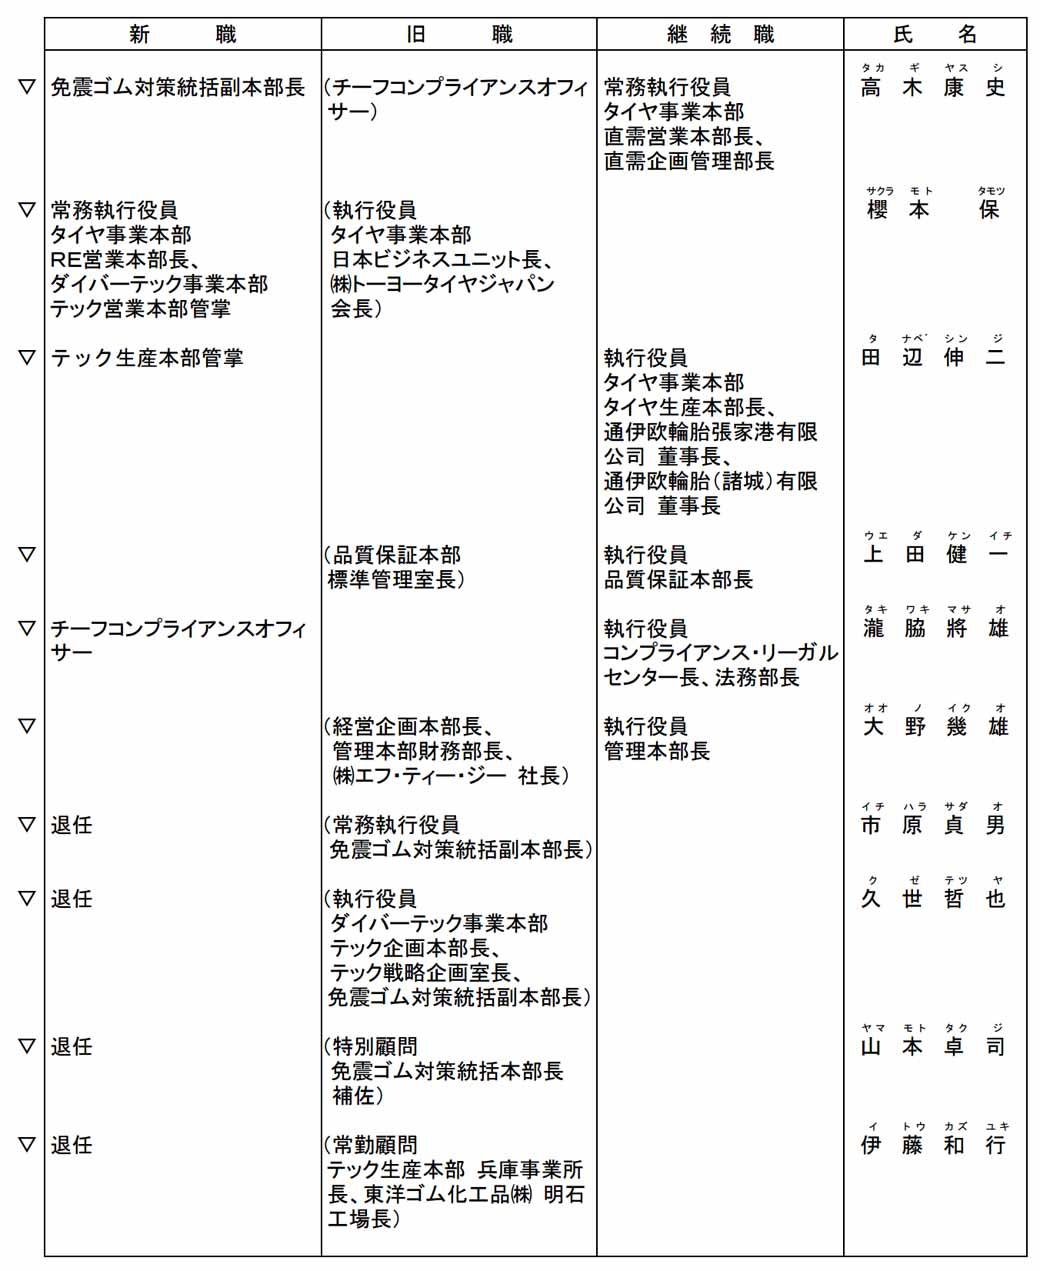 Toyo Tire & Rubber, and officers including personnel announcement. Yamamoto Takuji Previous president resigned-2